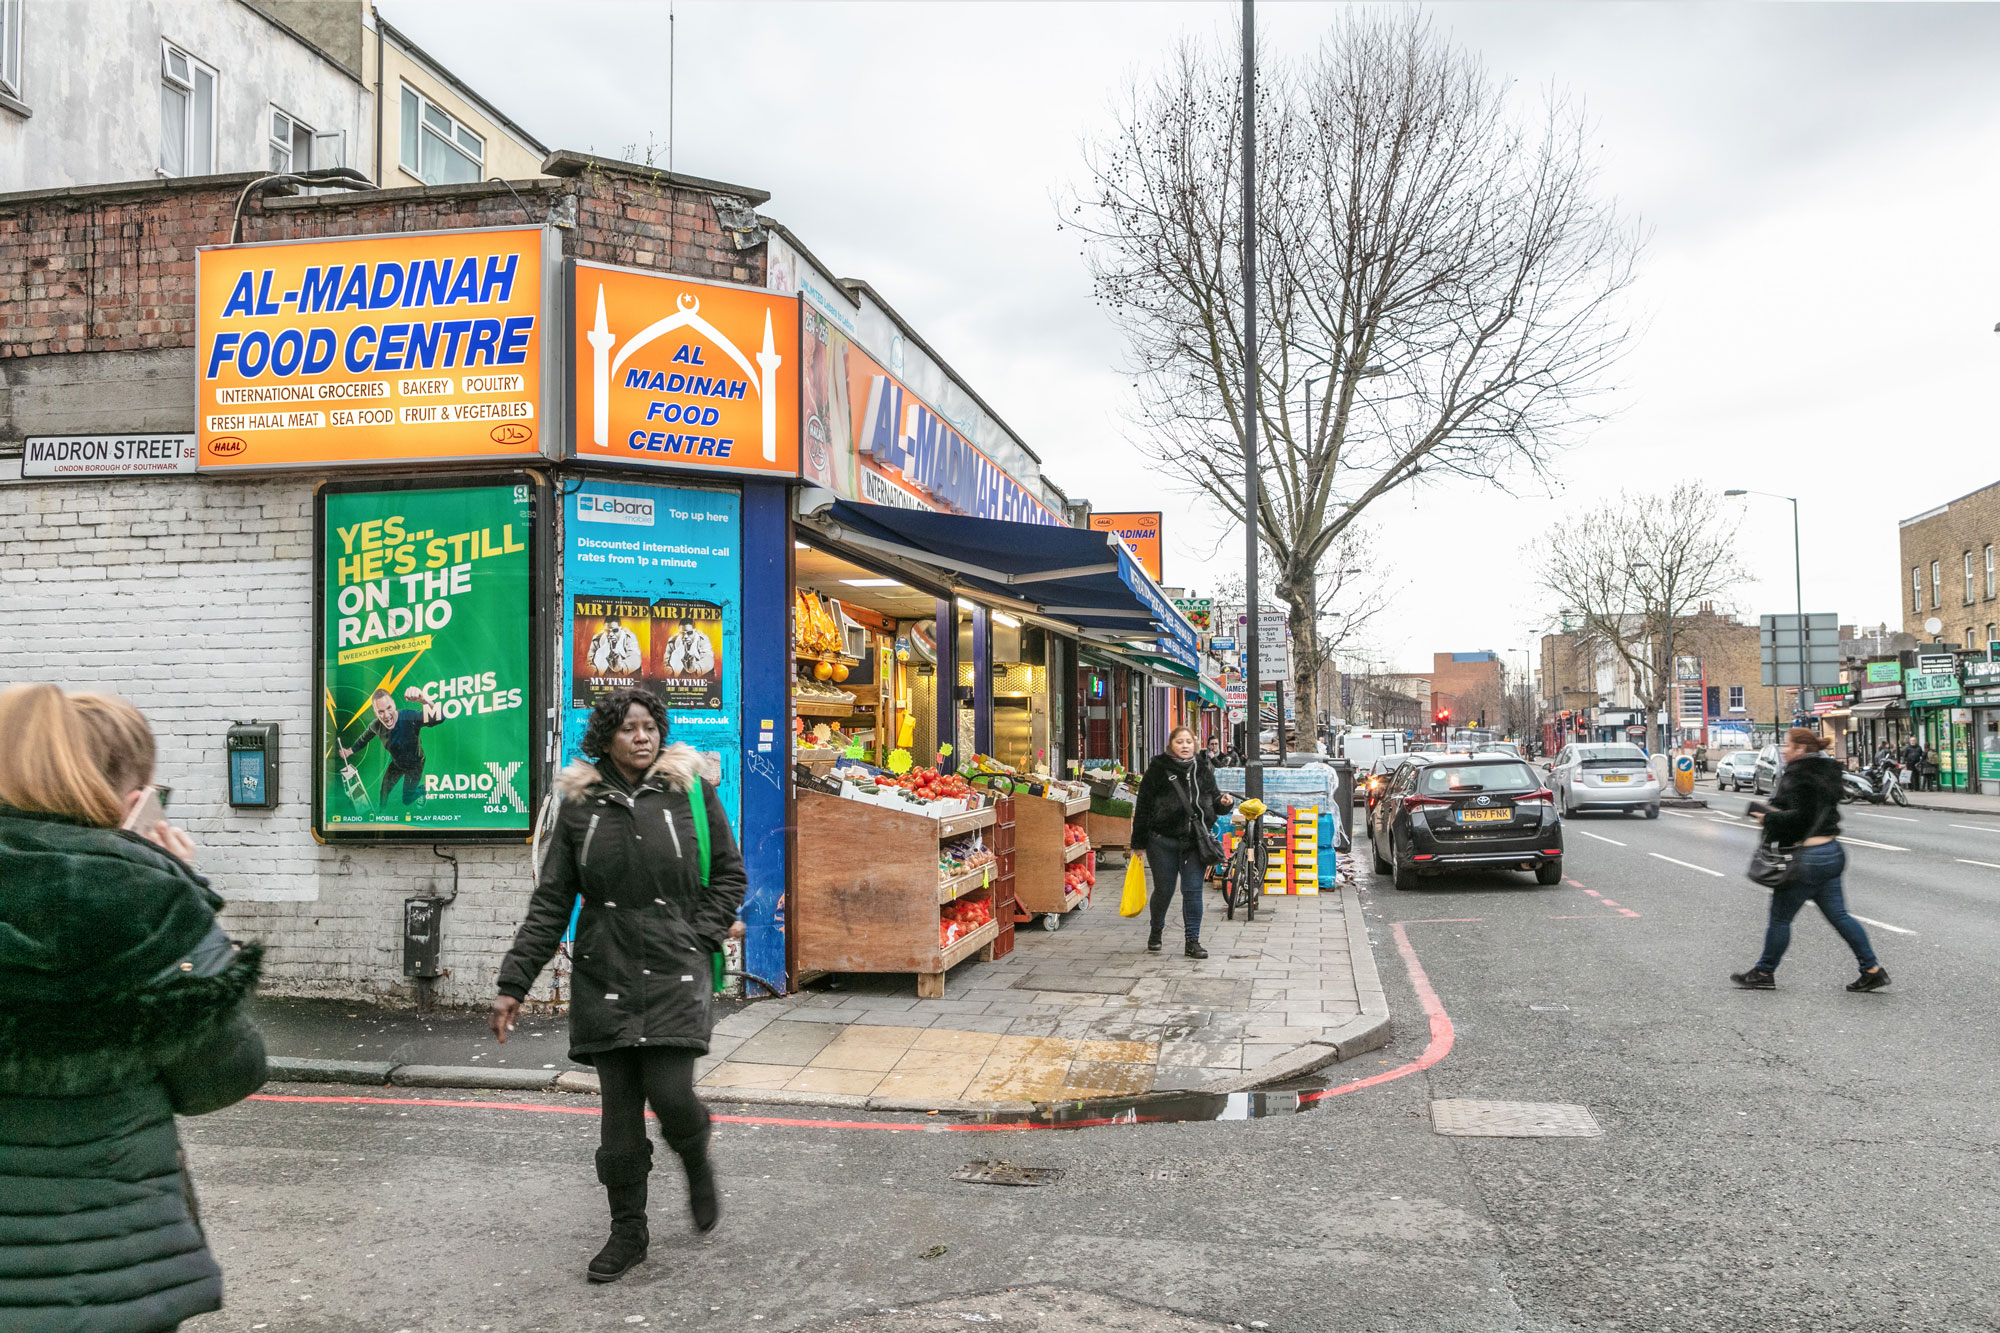 Multi-ethnic food shops are part of the history of the area